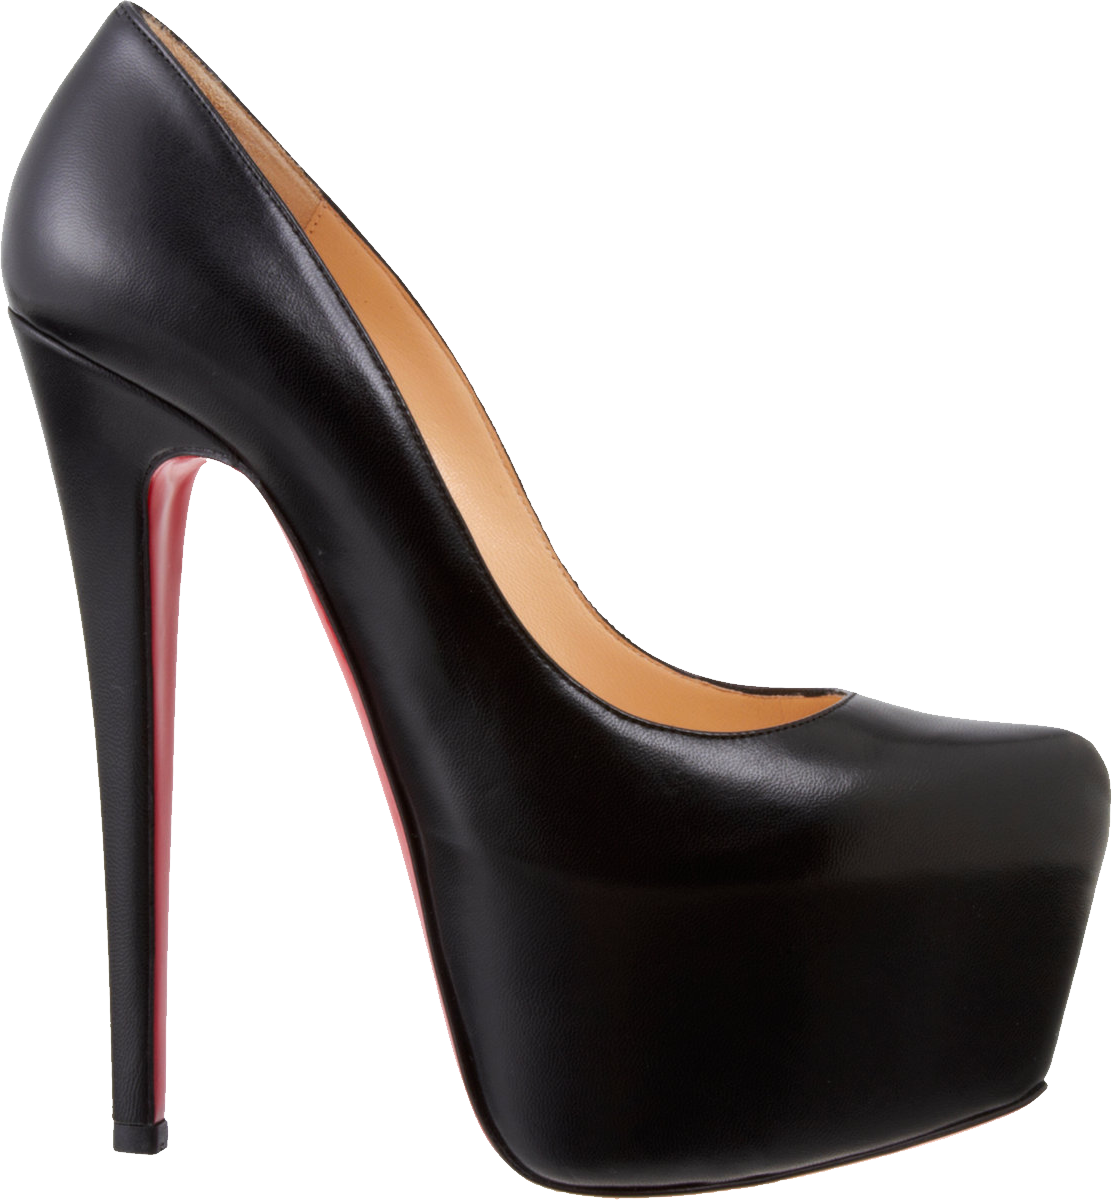 Black Louboutin Lady's